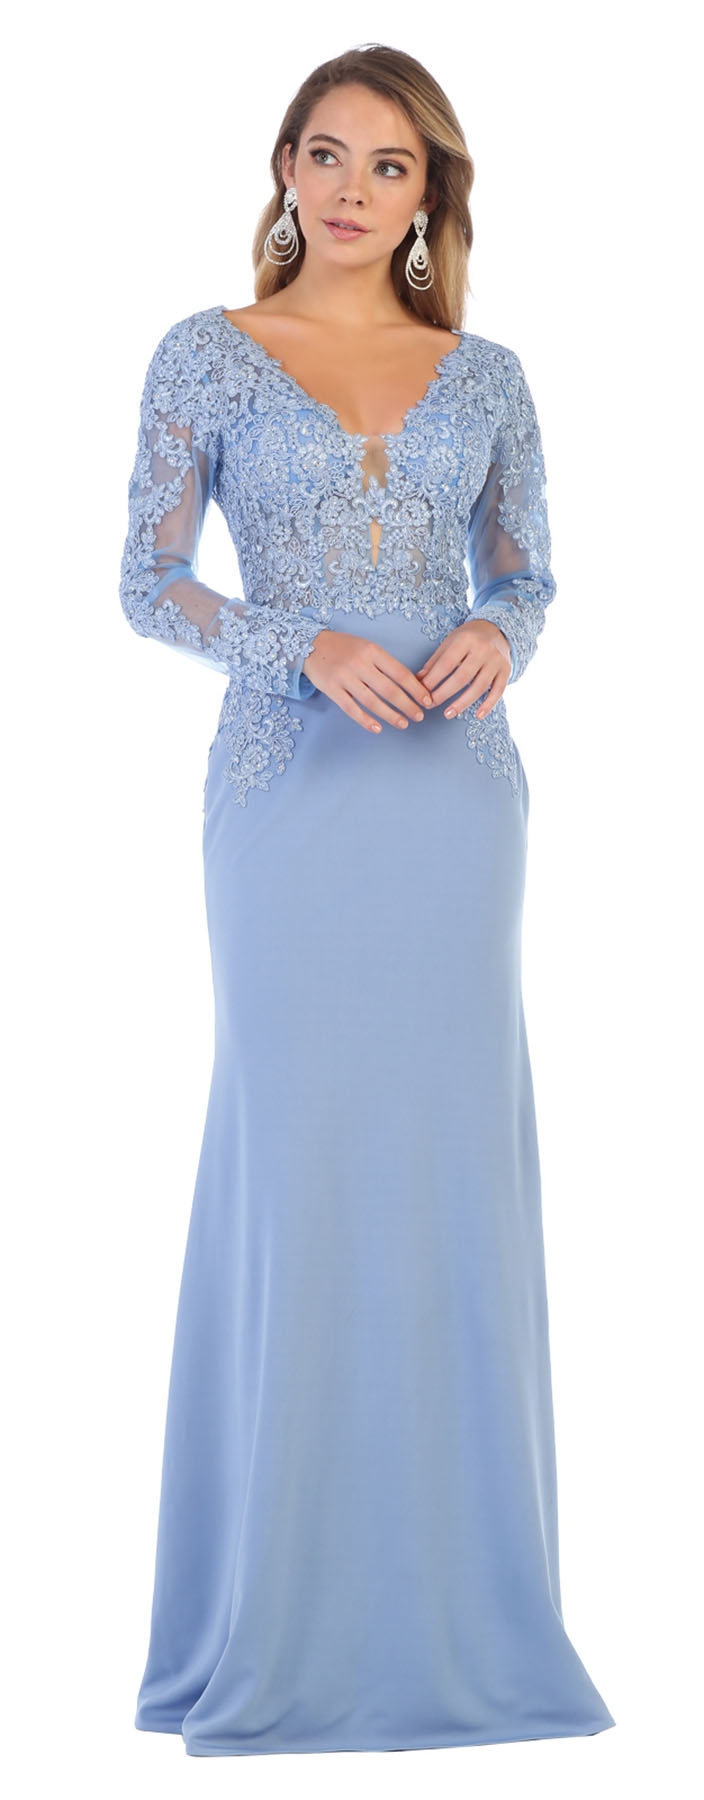 Designer LONG SLEEVE EMBROIDERED PROM SPECIAL OCCASION